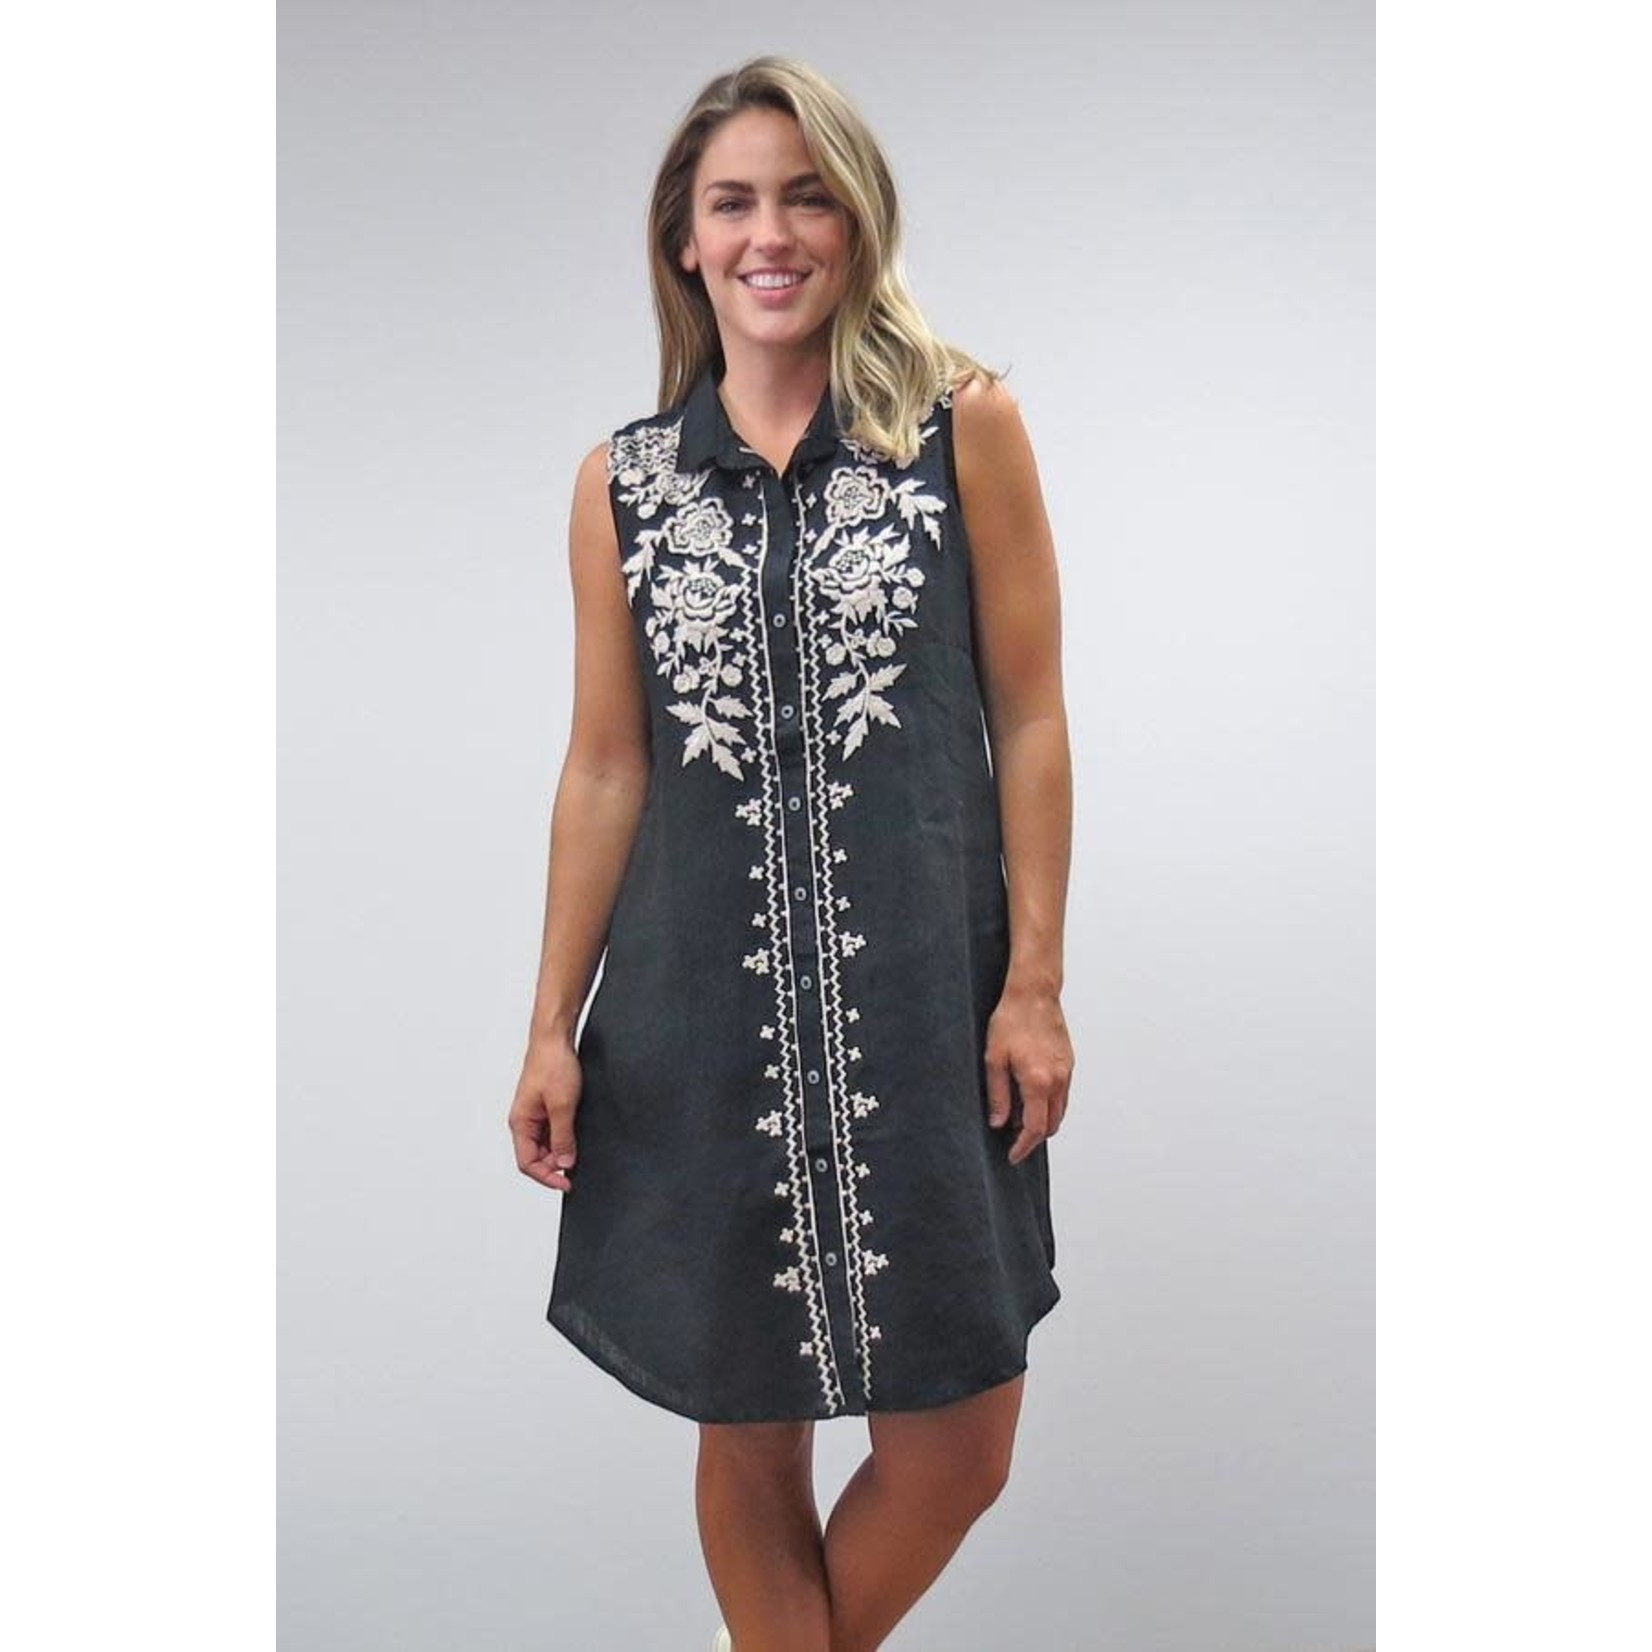 Caite Tiya Black Button-up Dress w/ White Embroidered Detail